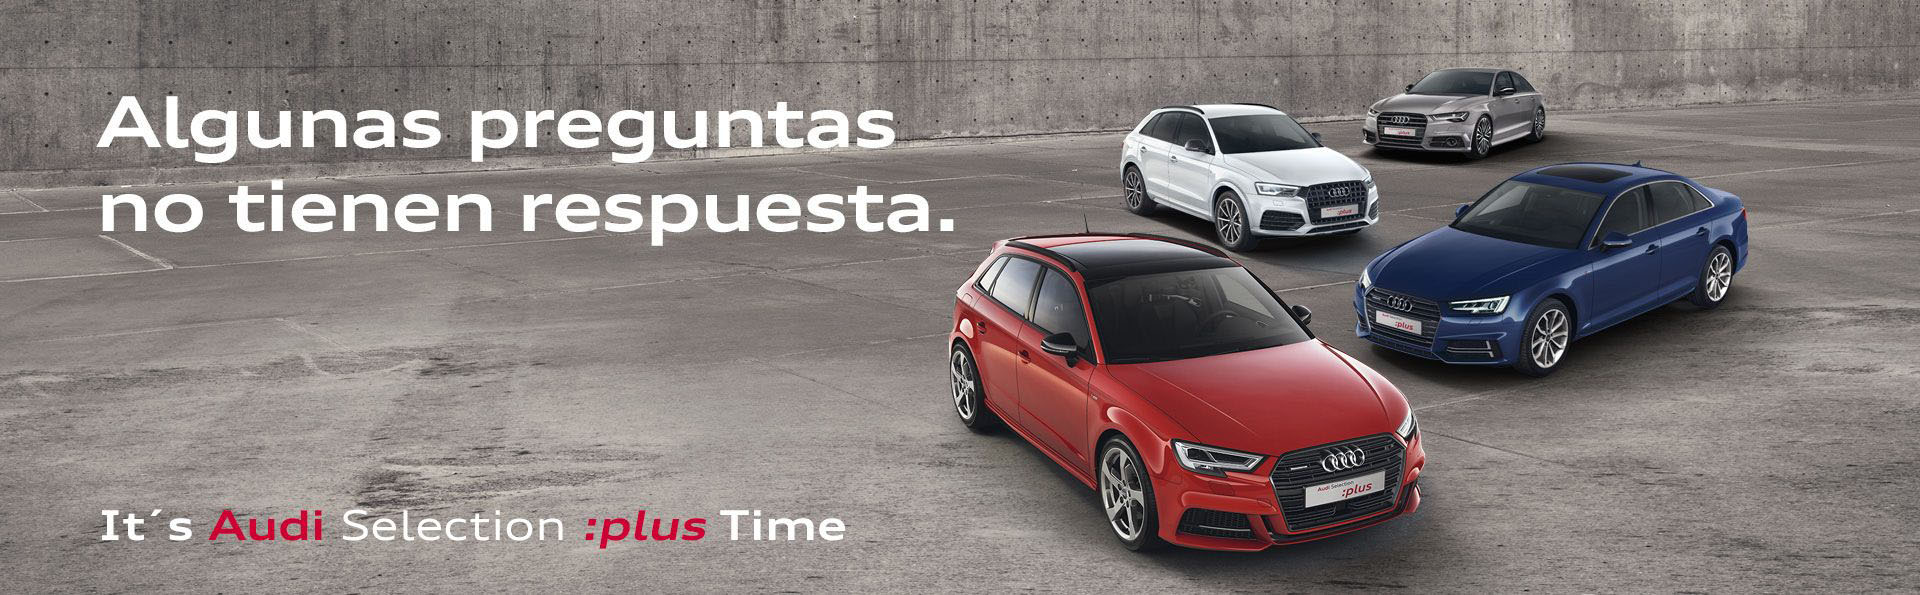 vehículos Audi Selection :plus Time